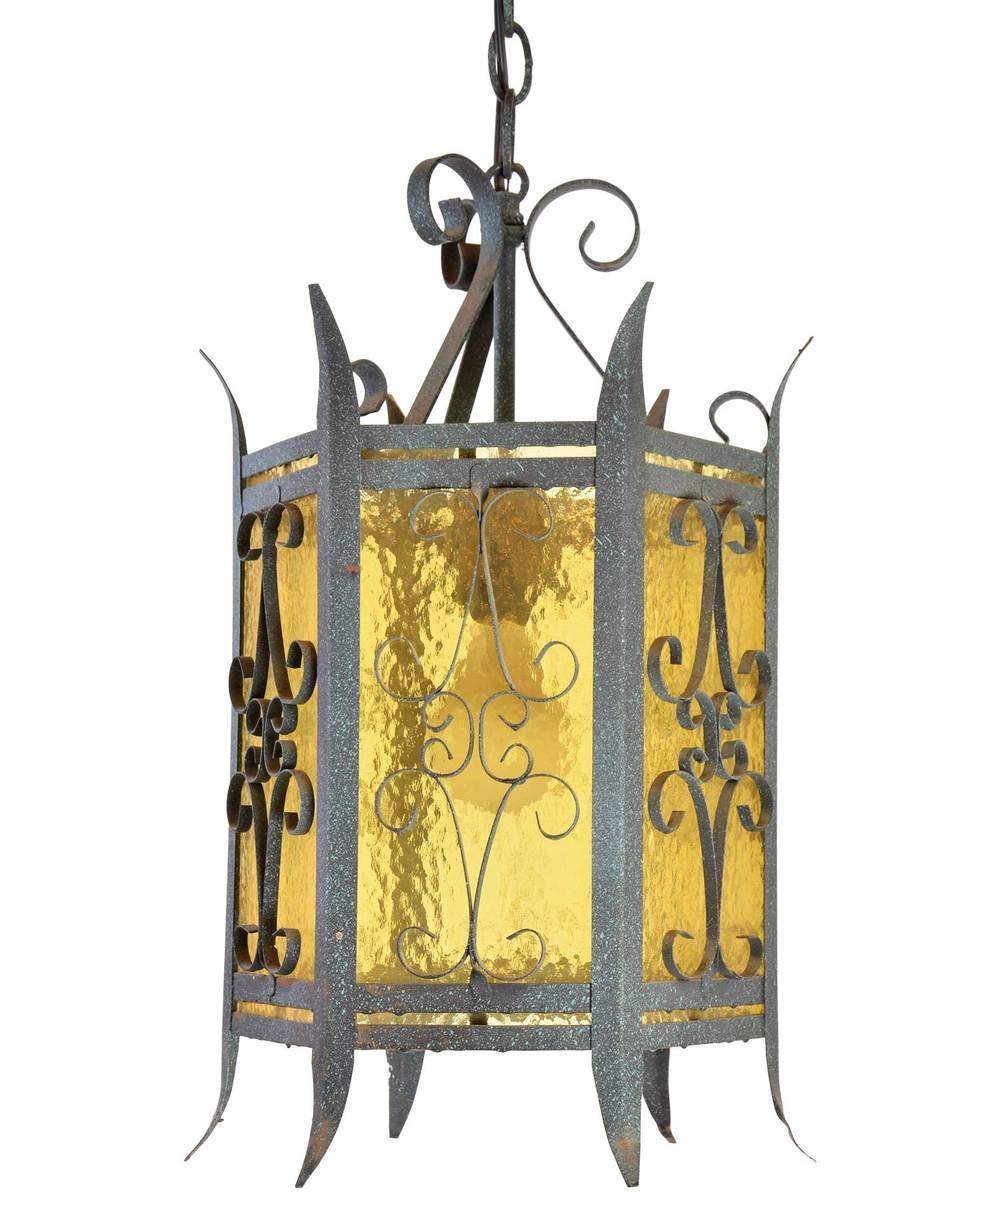 46371-steel-and-amber-glass-pendant-lantern-body.jpg